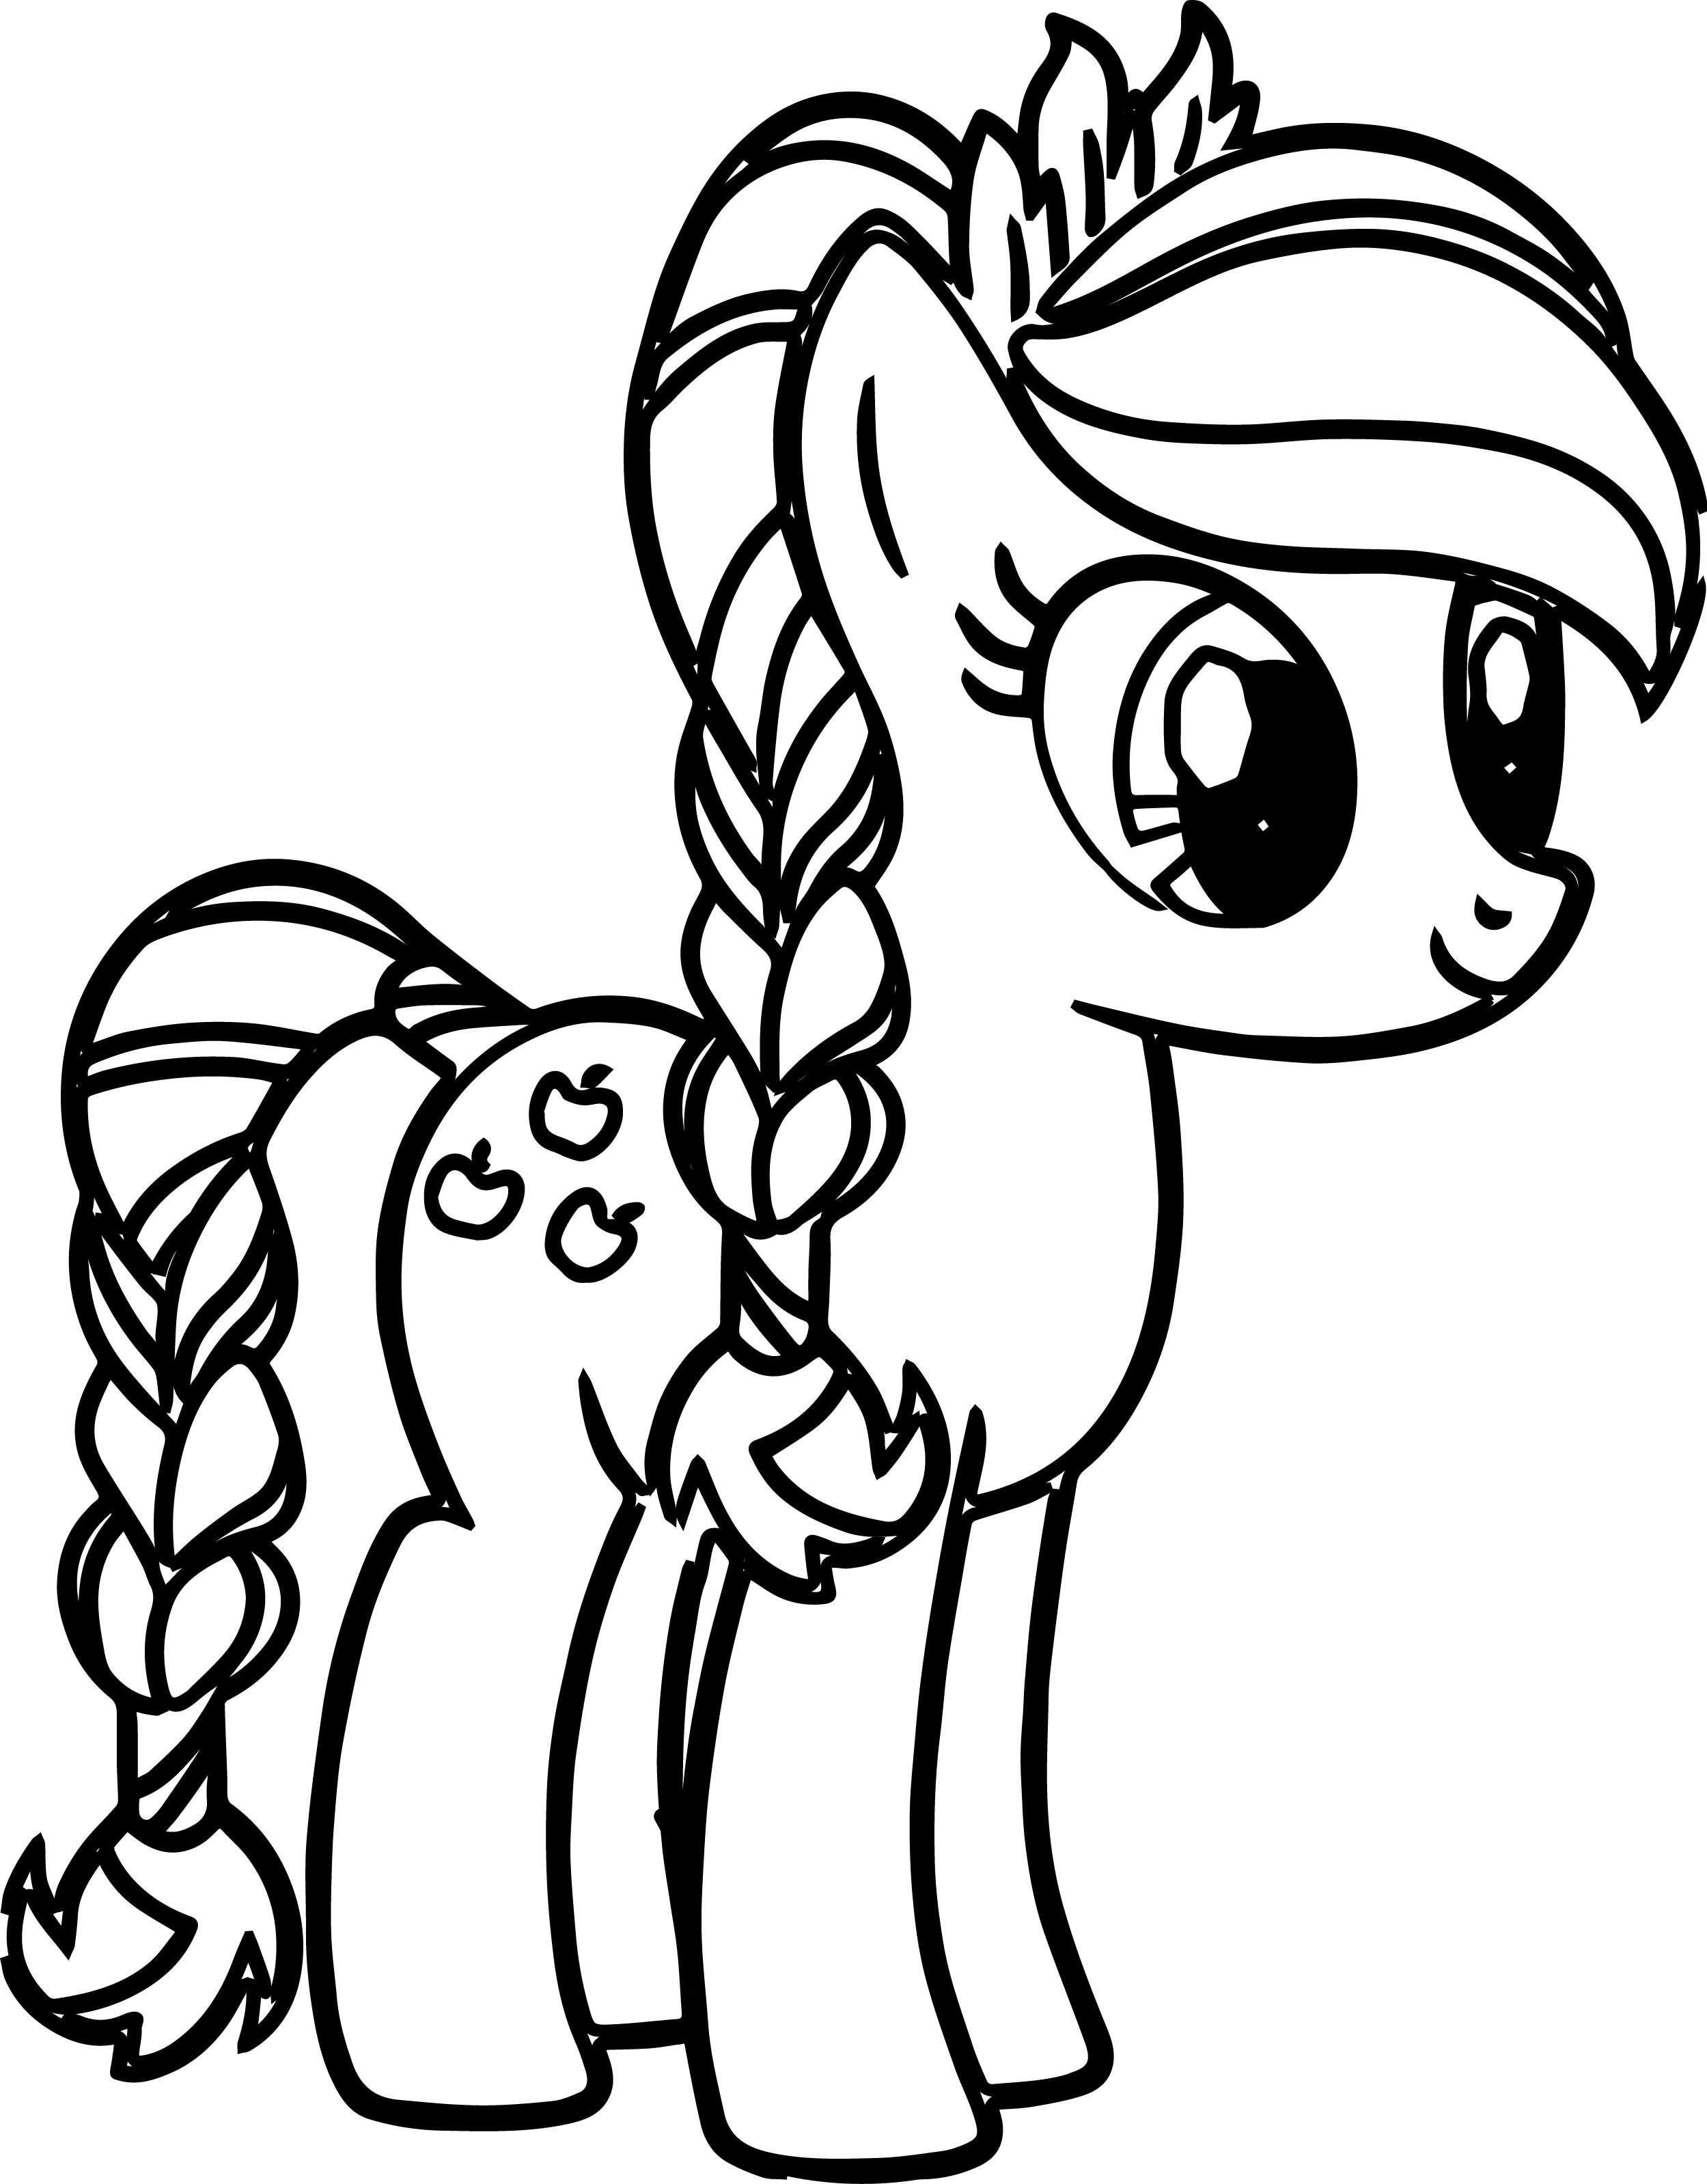 Little pony images for coloring through the thousands of pictures on line regarding little pony images for coloring we picks the top series along with